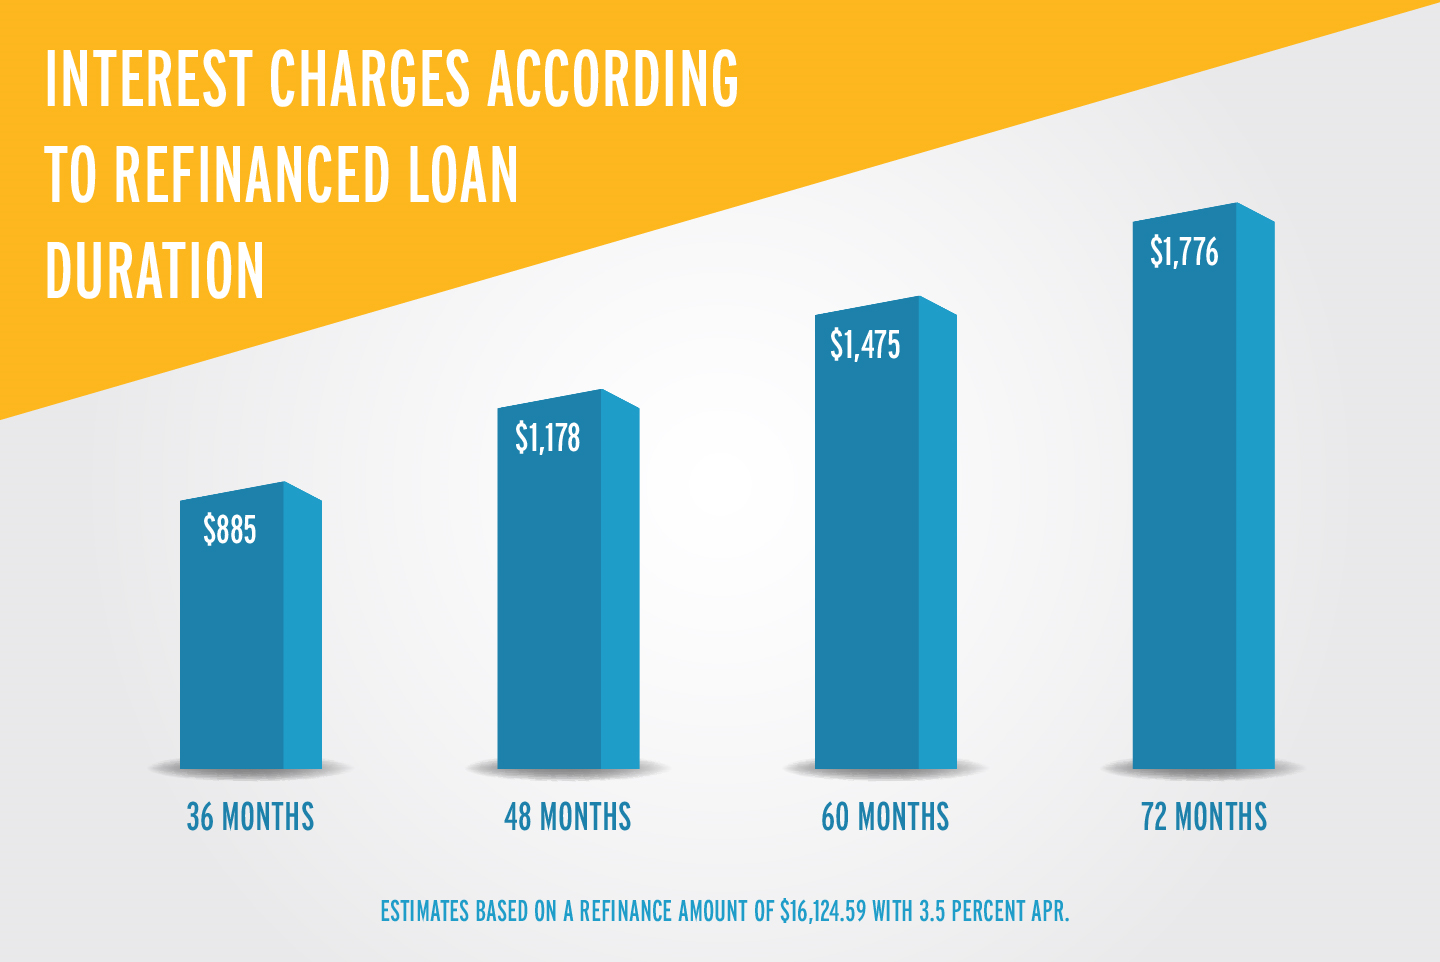 Interest charges by refinanced loan duration